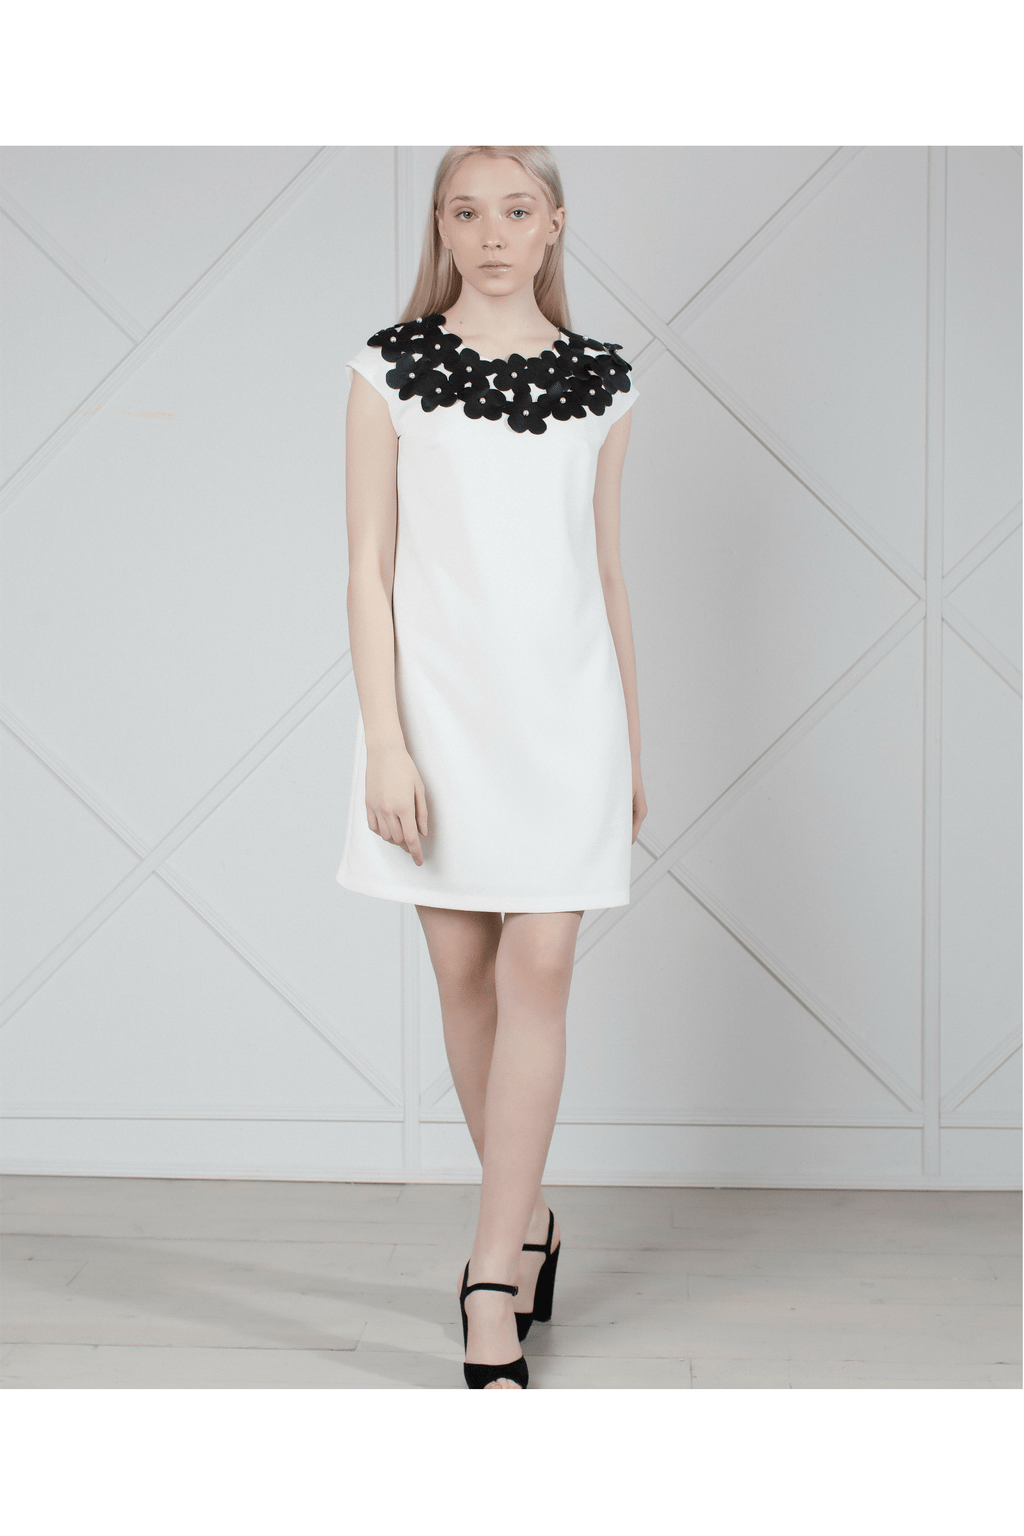 White mini dress with flower appliques - Himelhoch's